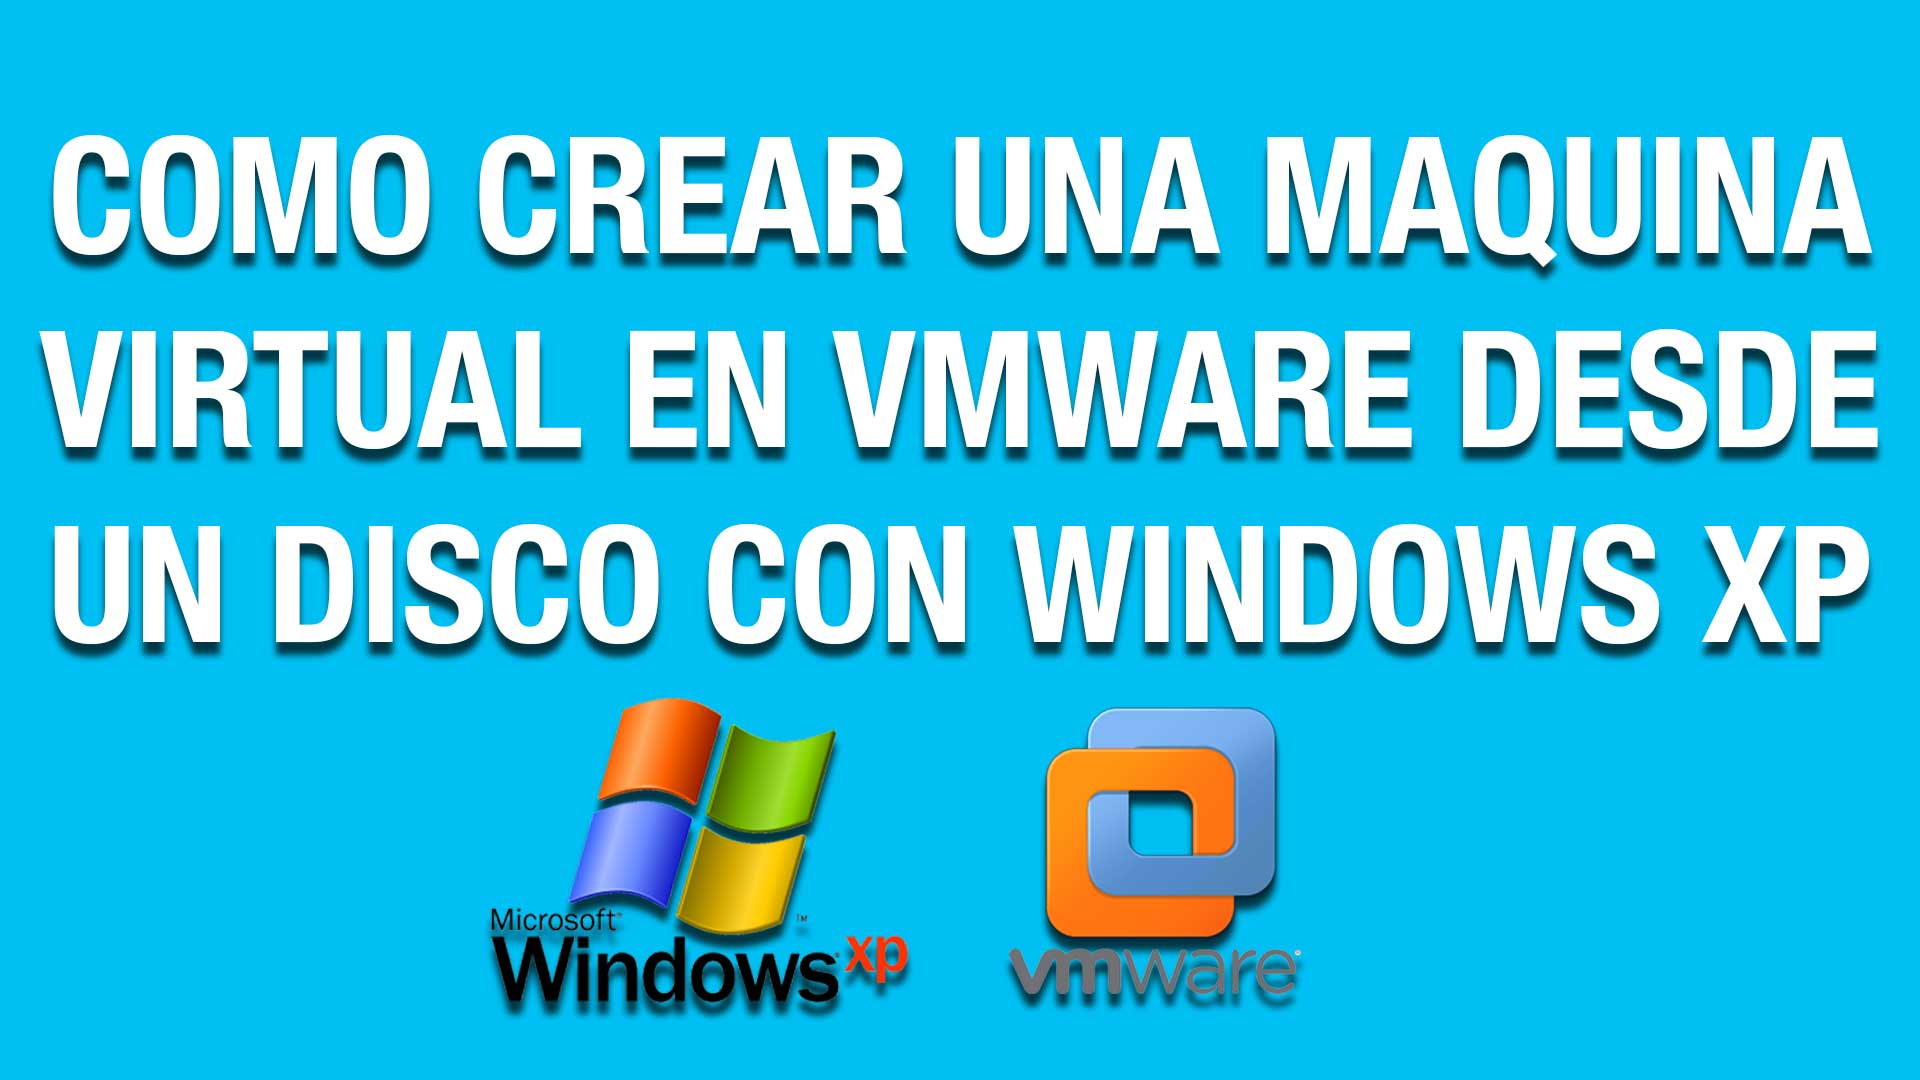 Como crear una Maquina Virtual en VMWare desde un Disco con Windows XP : Tutorial Recuperacion Datos